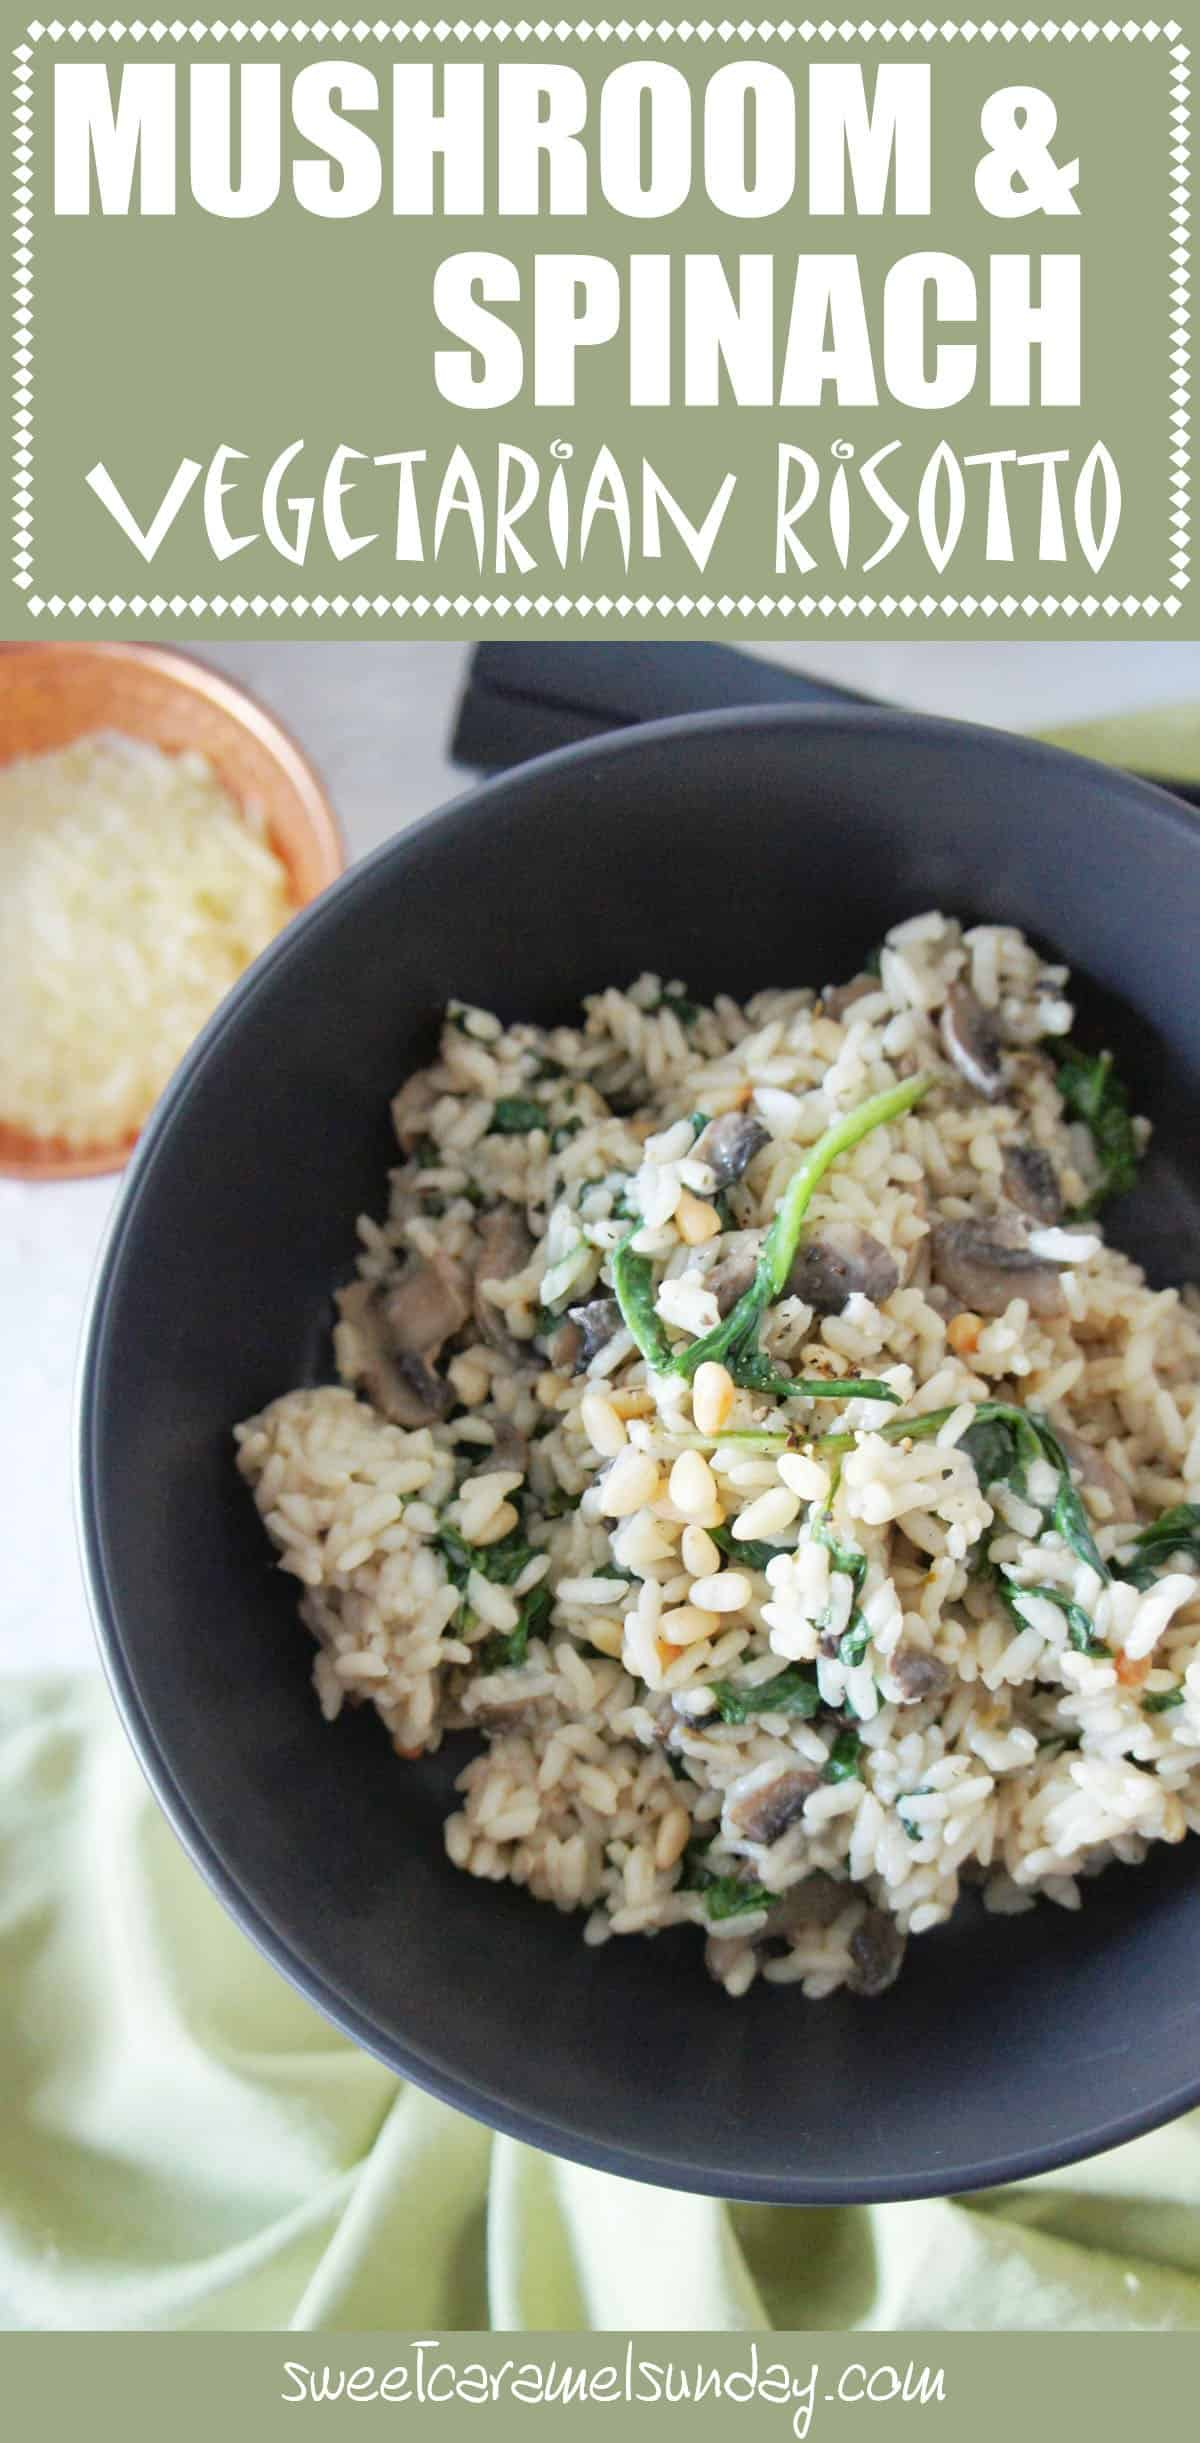 Mushroom and Spinach Risotto